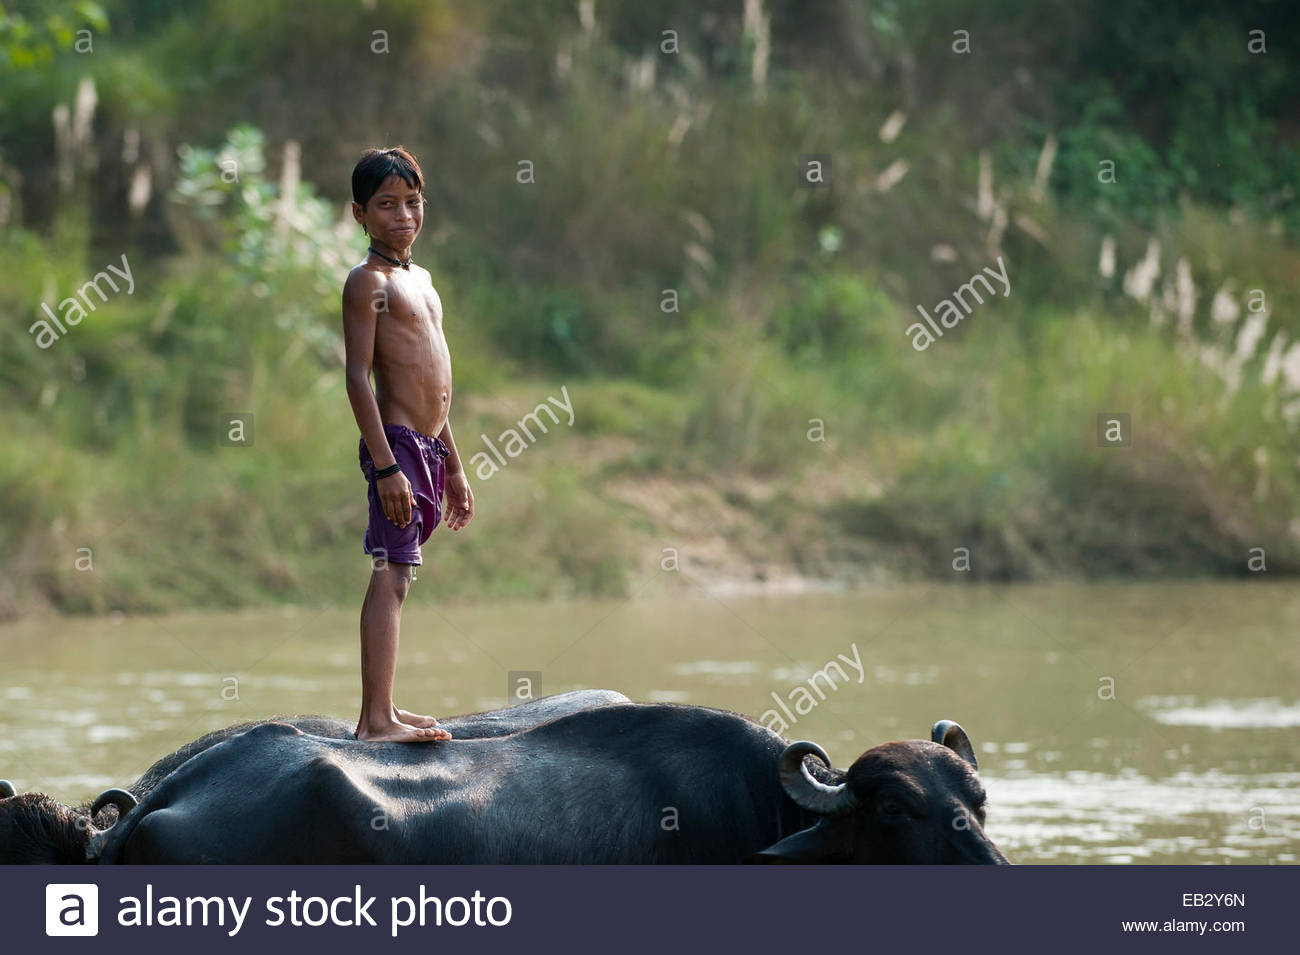 A boy messing about in the river standing on the back of a water buffalo in Nepal - Stock Image